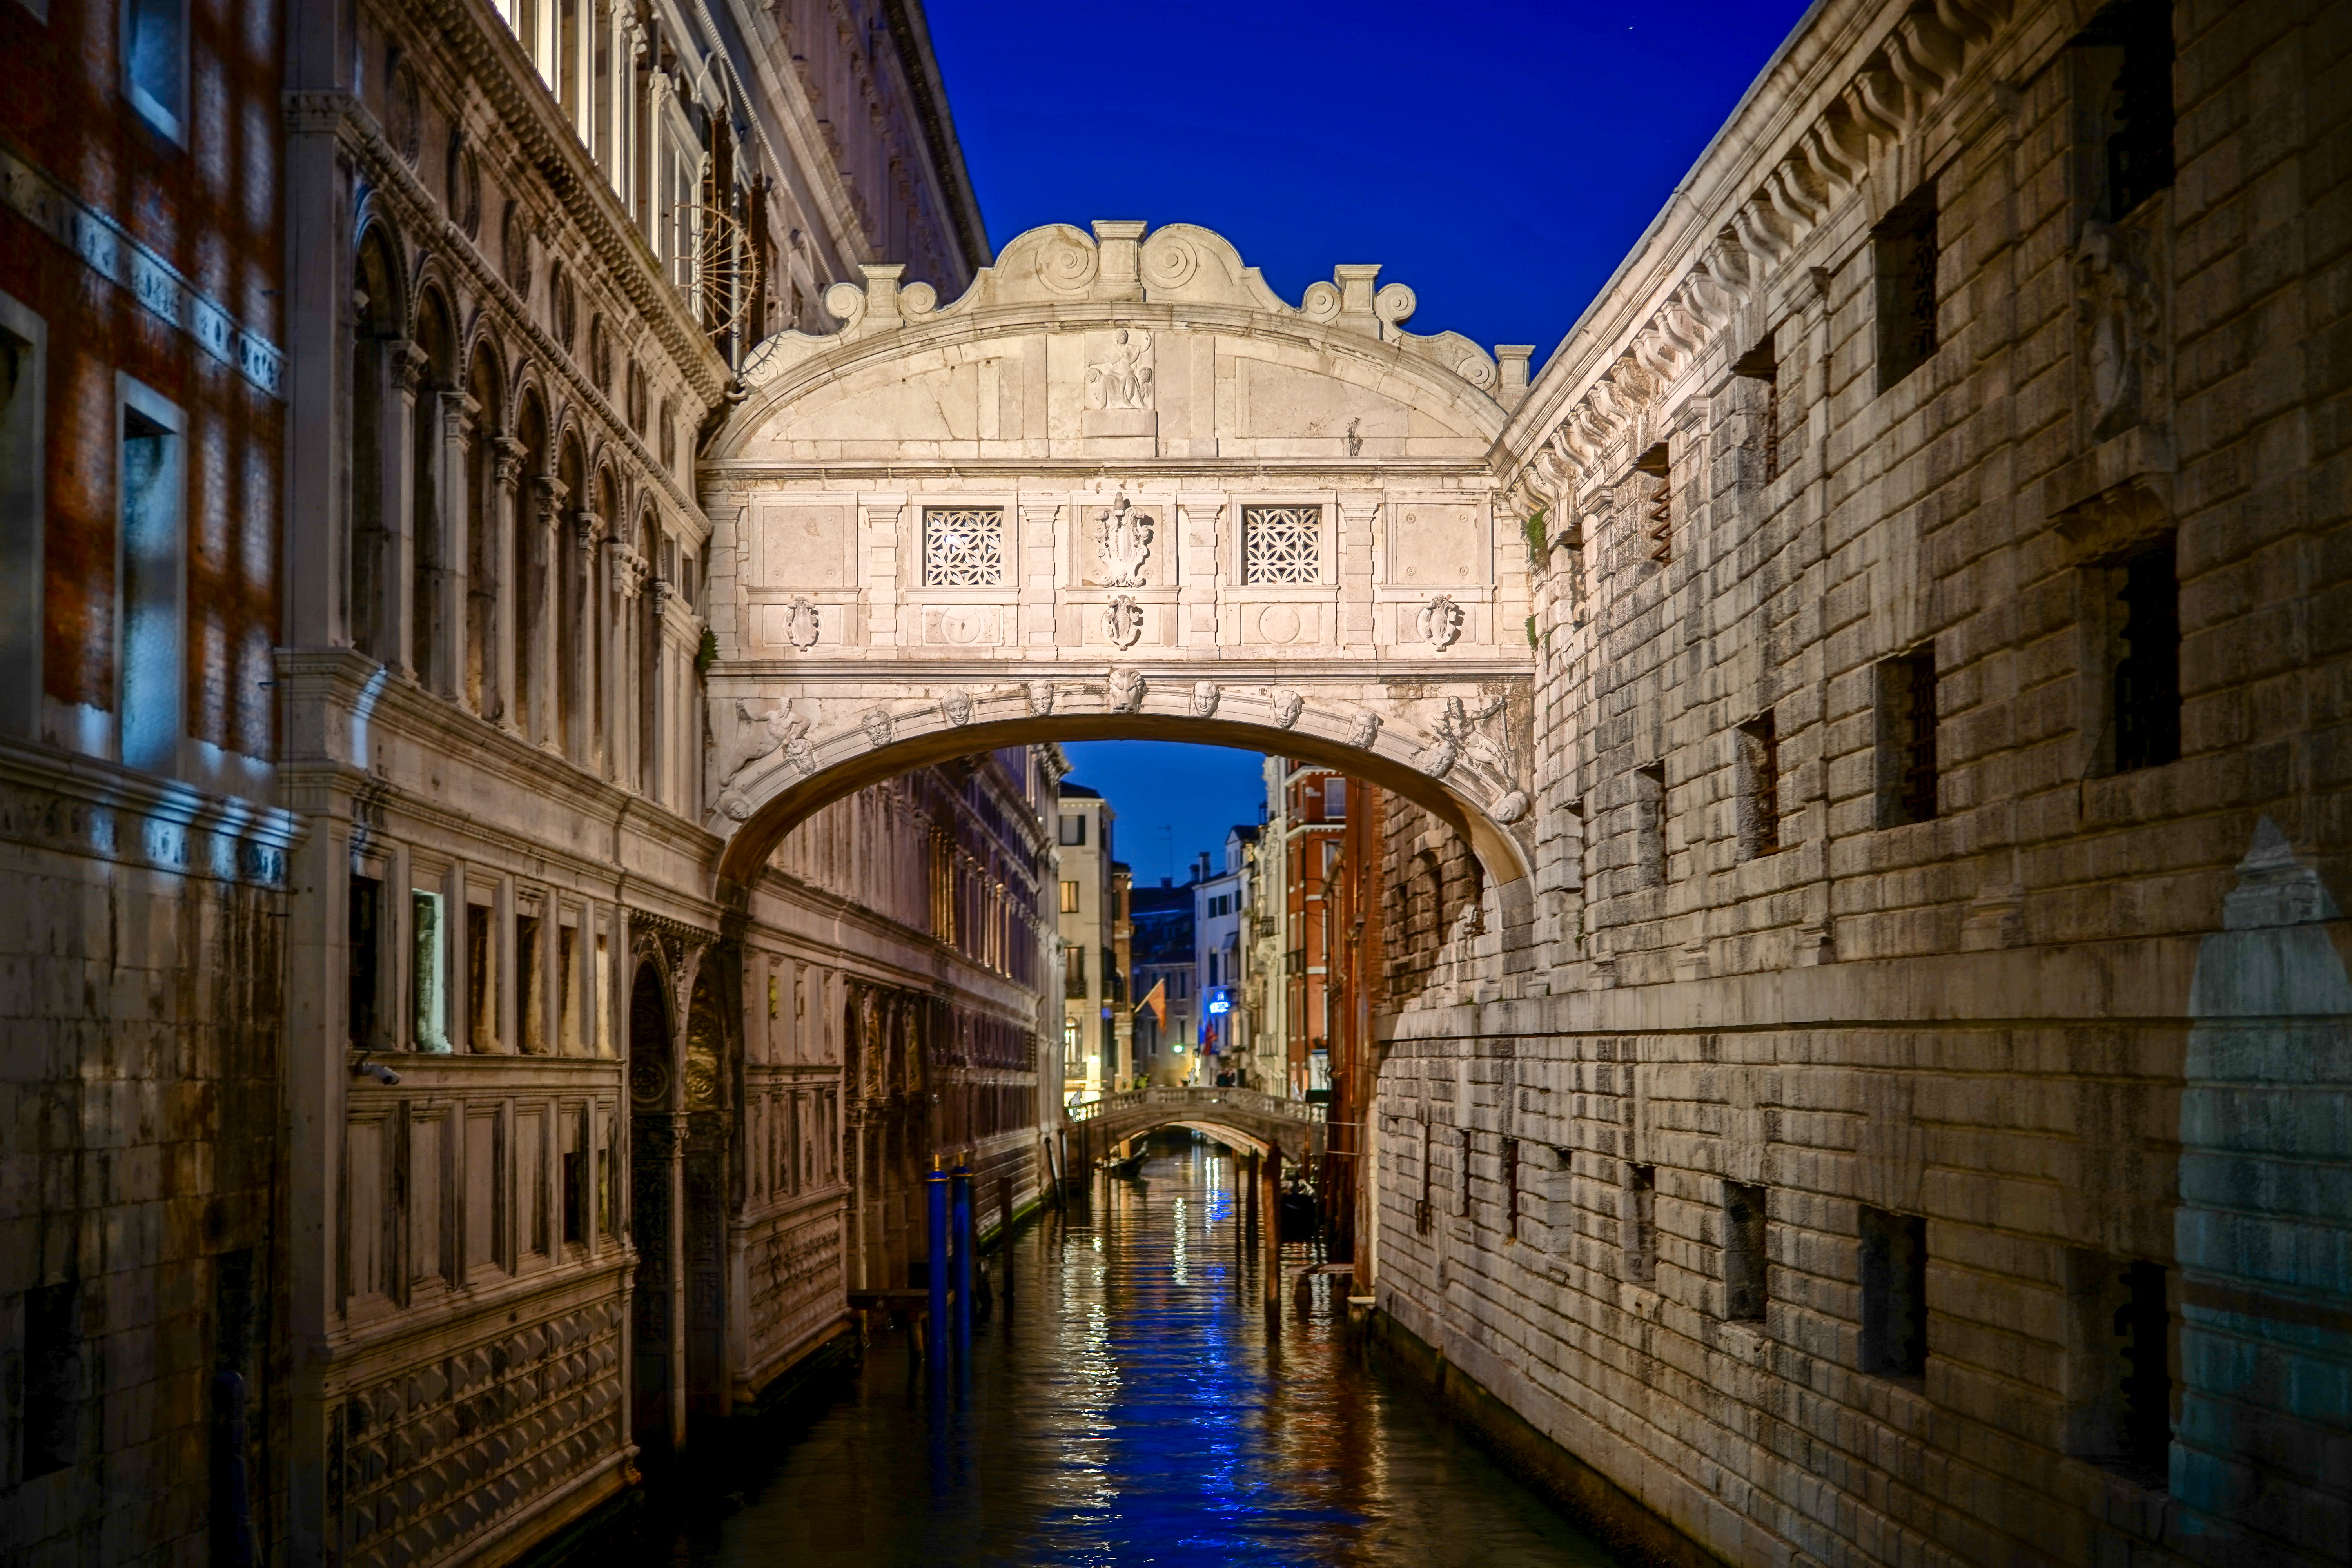 Venice draws in millions of visitors every year. Credit: PA